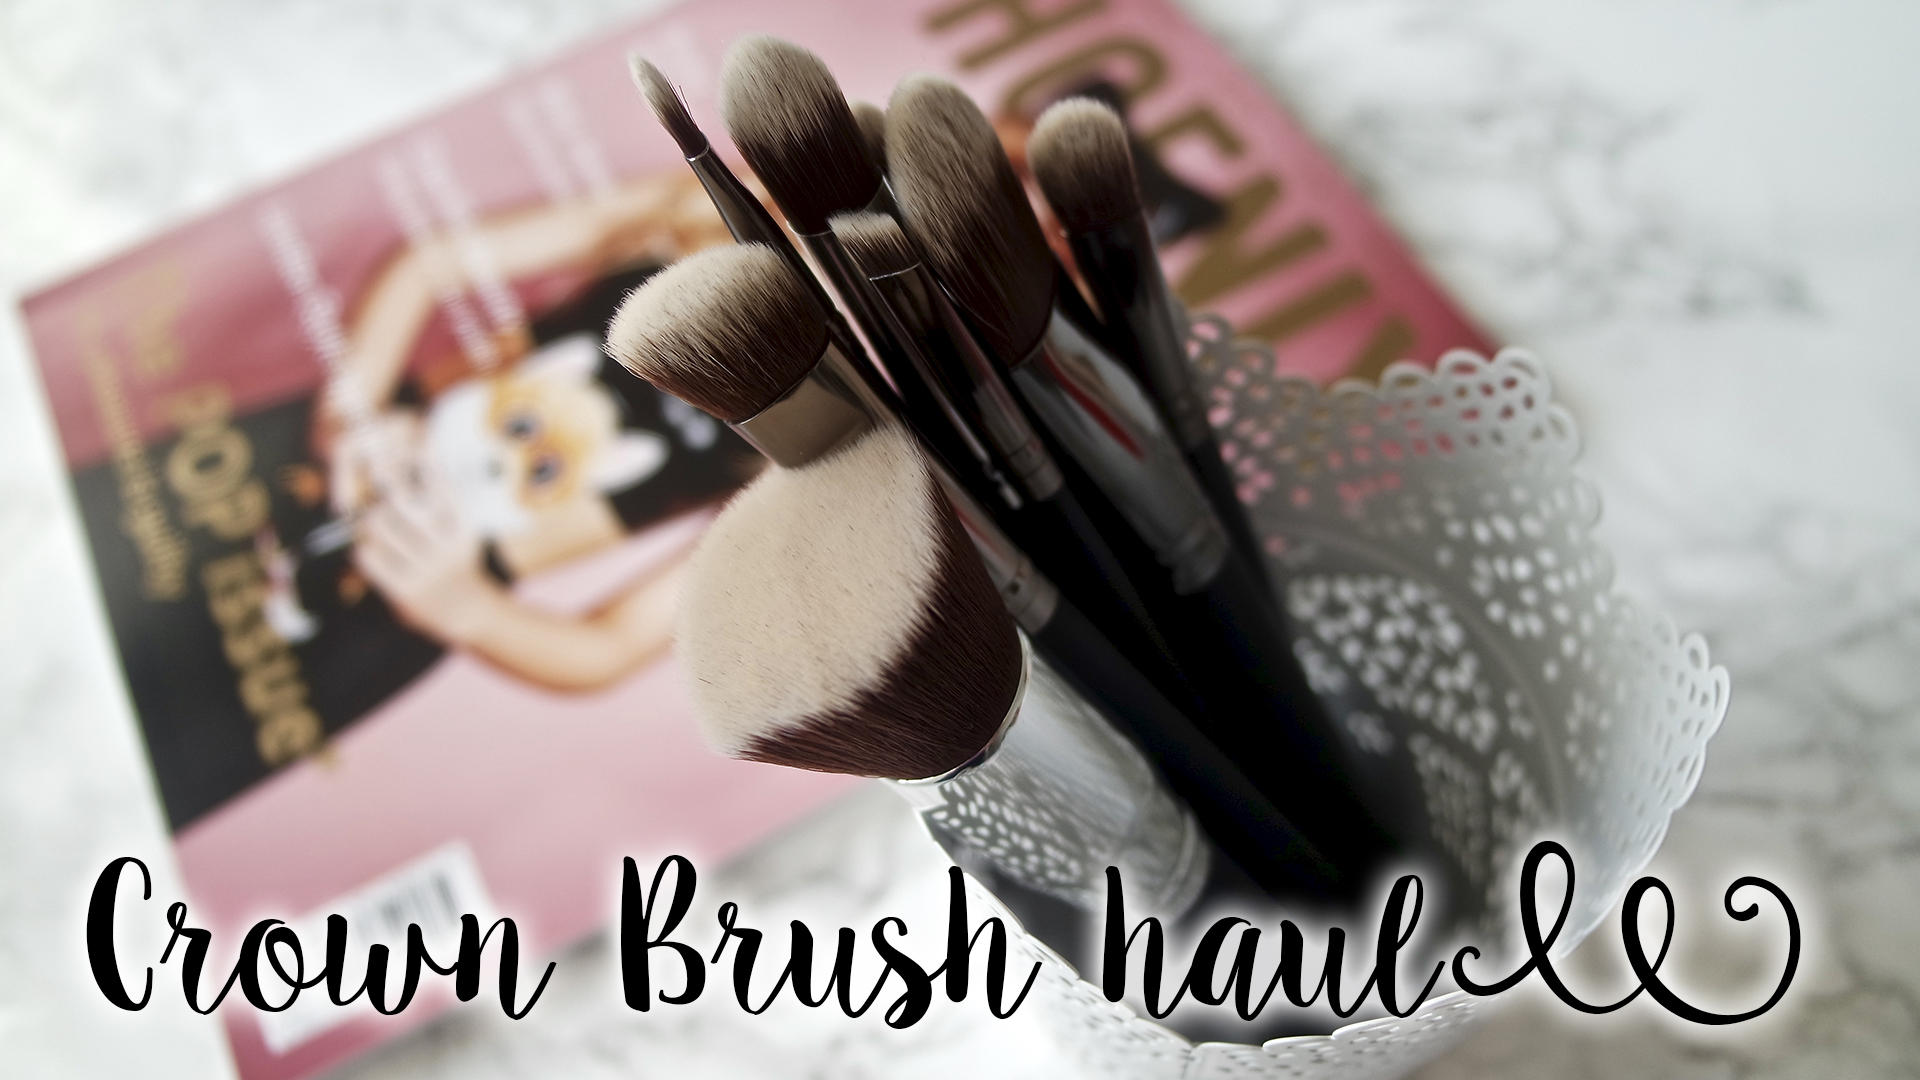 Makeup Brush Haul - Crown Brush